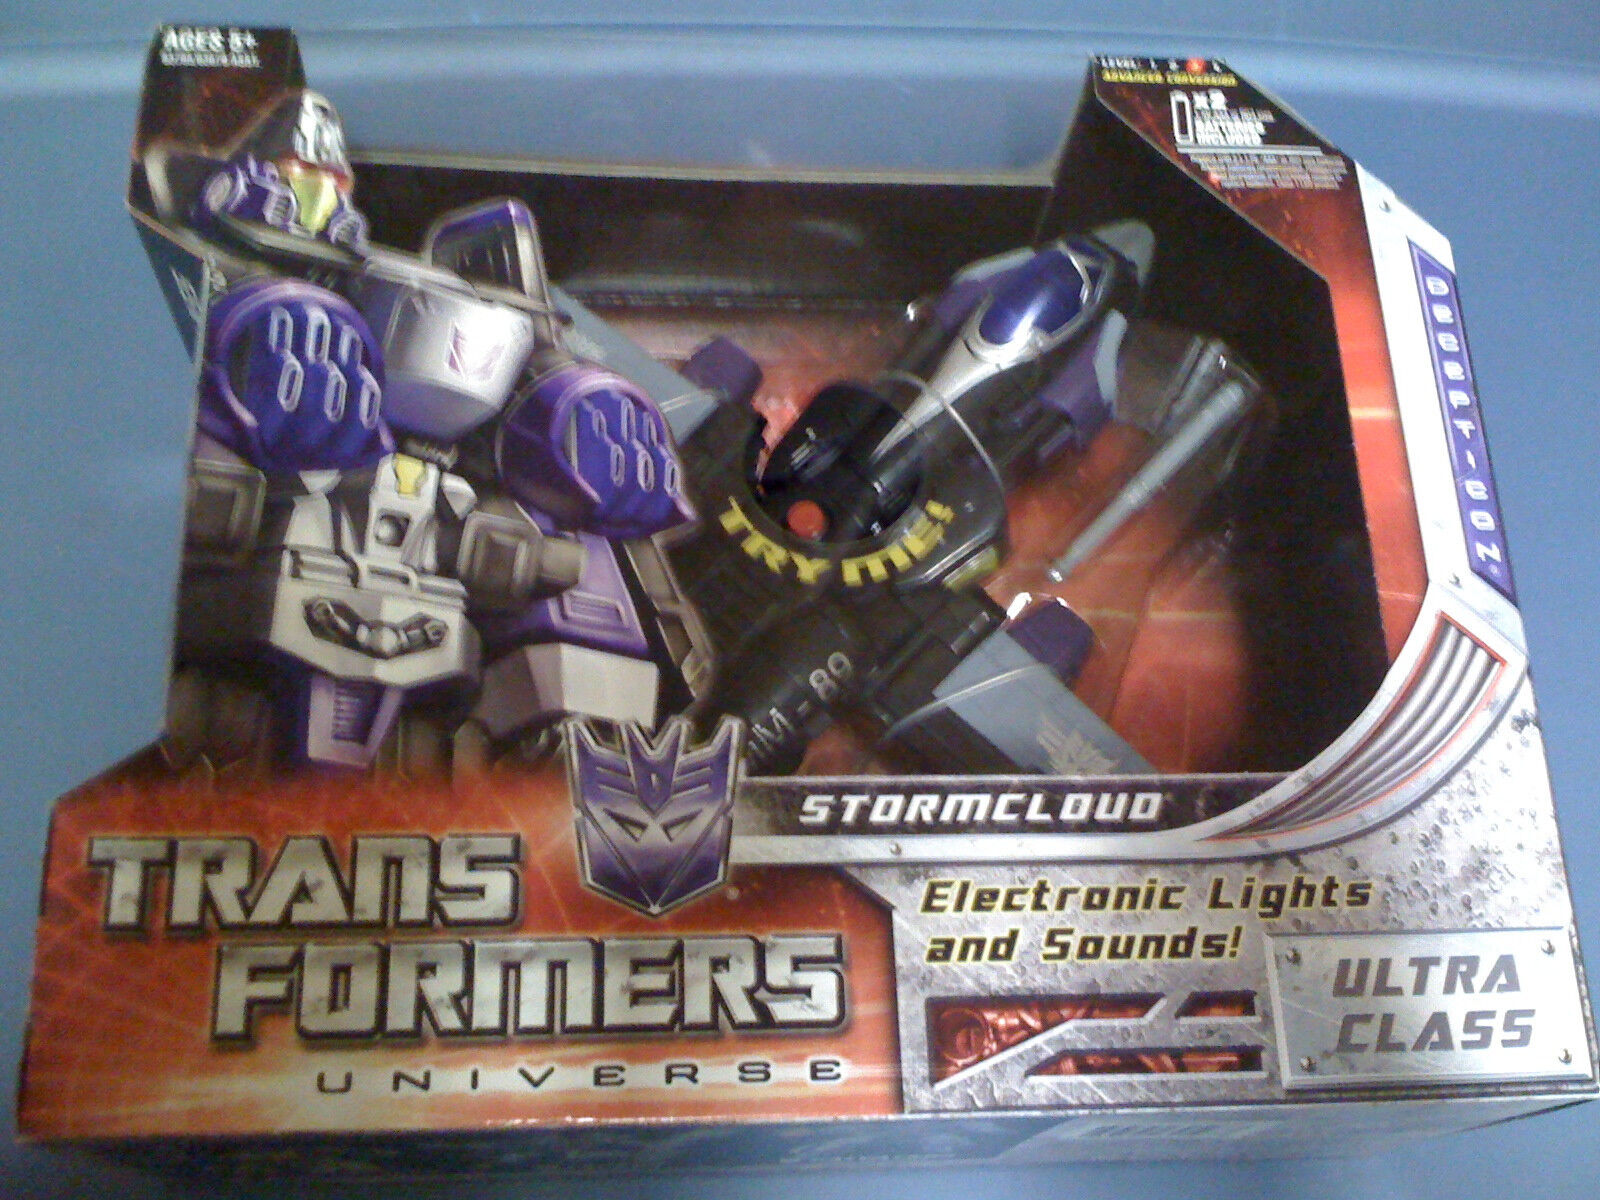 TRANSFORMERS Universe Stormcloud Electronic Lights Sounds NEW FREE SHIP US